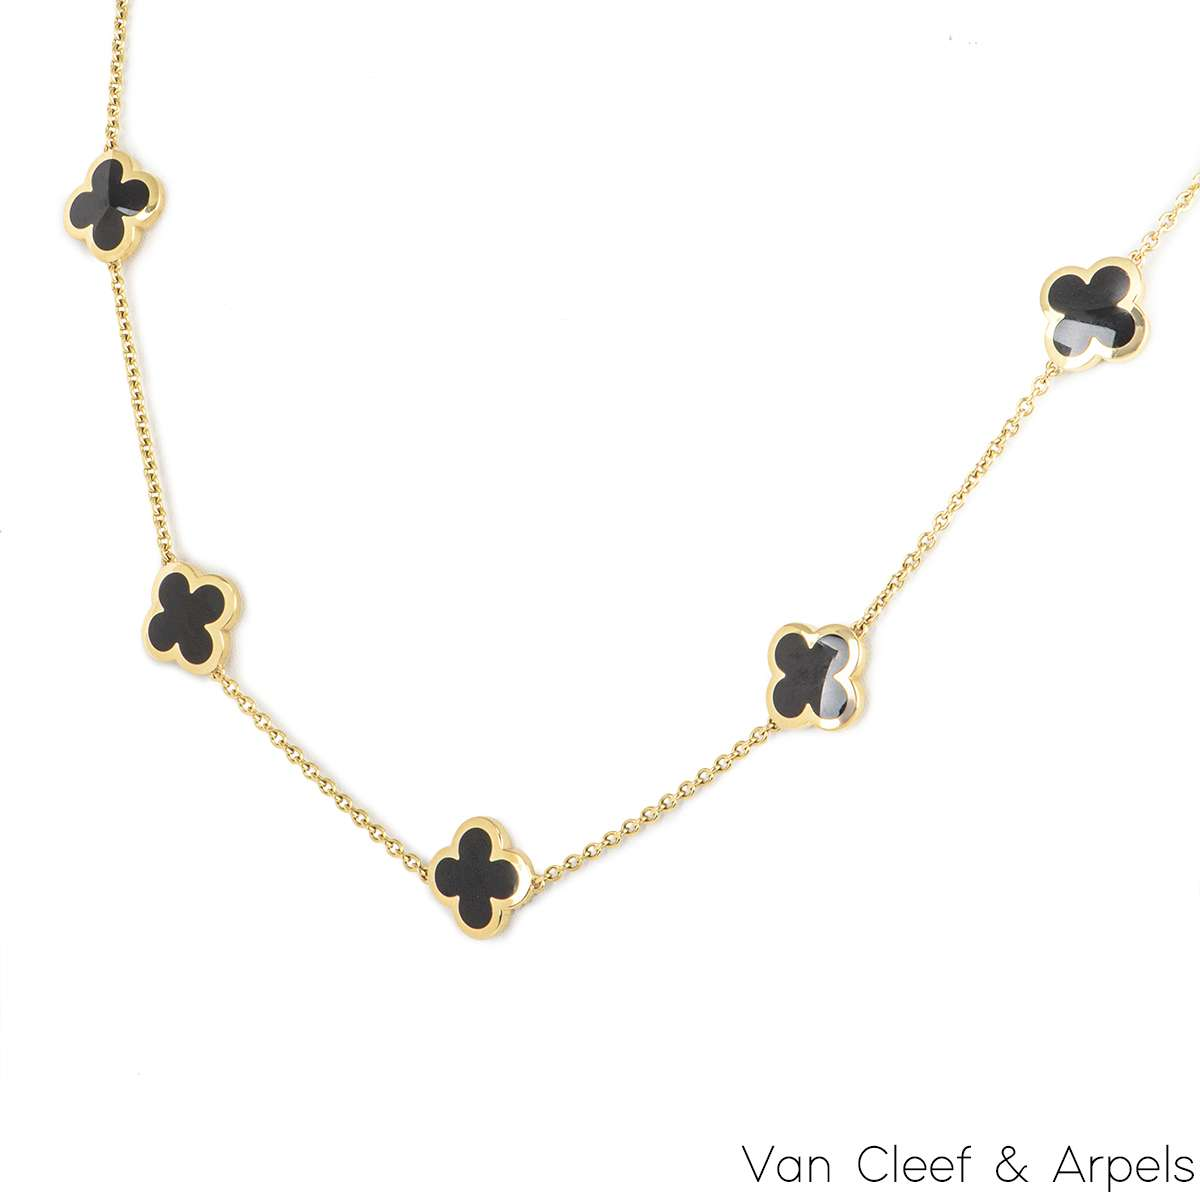 Van Cleef & Arpels Yellow Gold and Onyx Pure Alhambra Necklace ARB13700